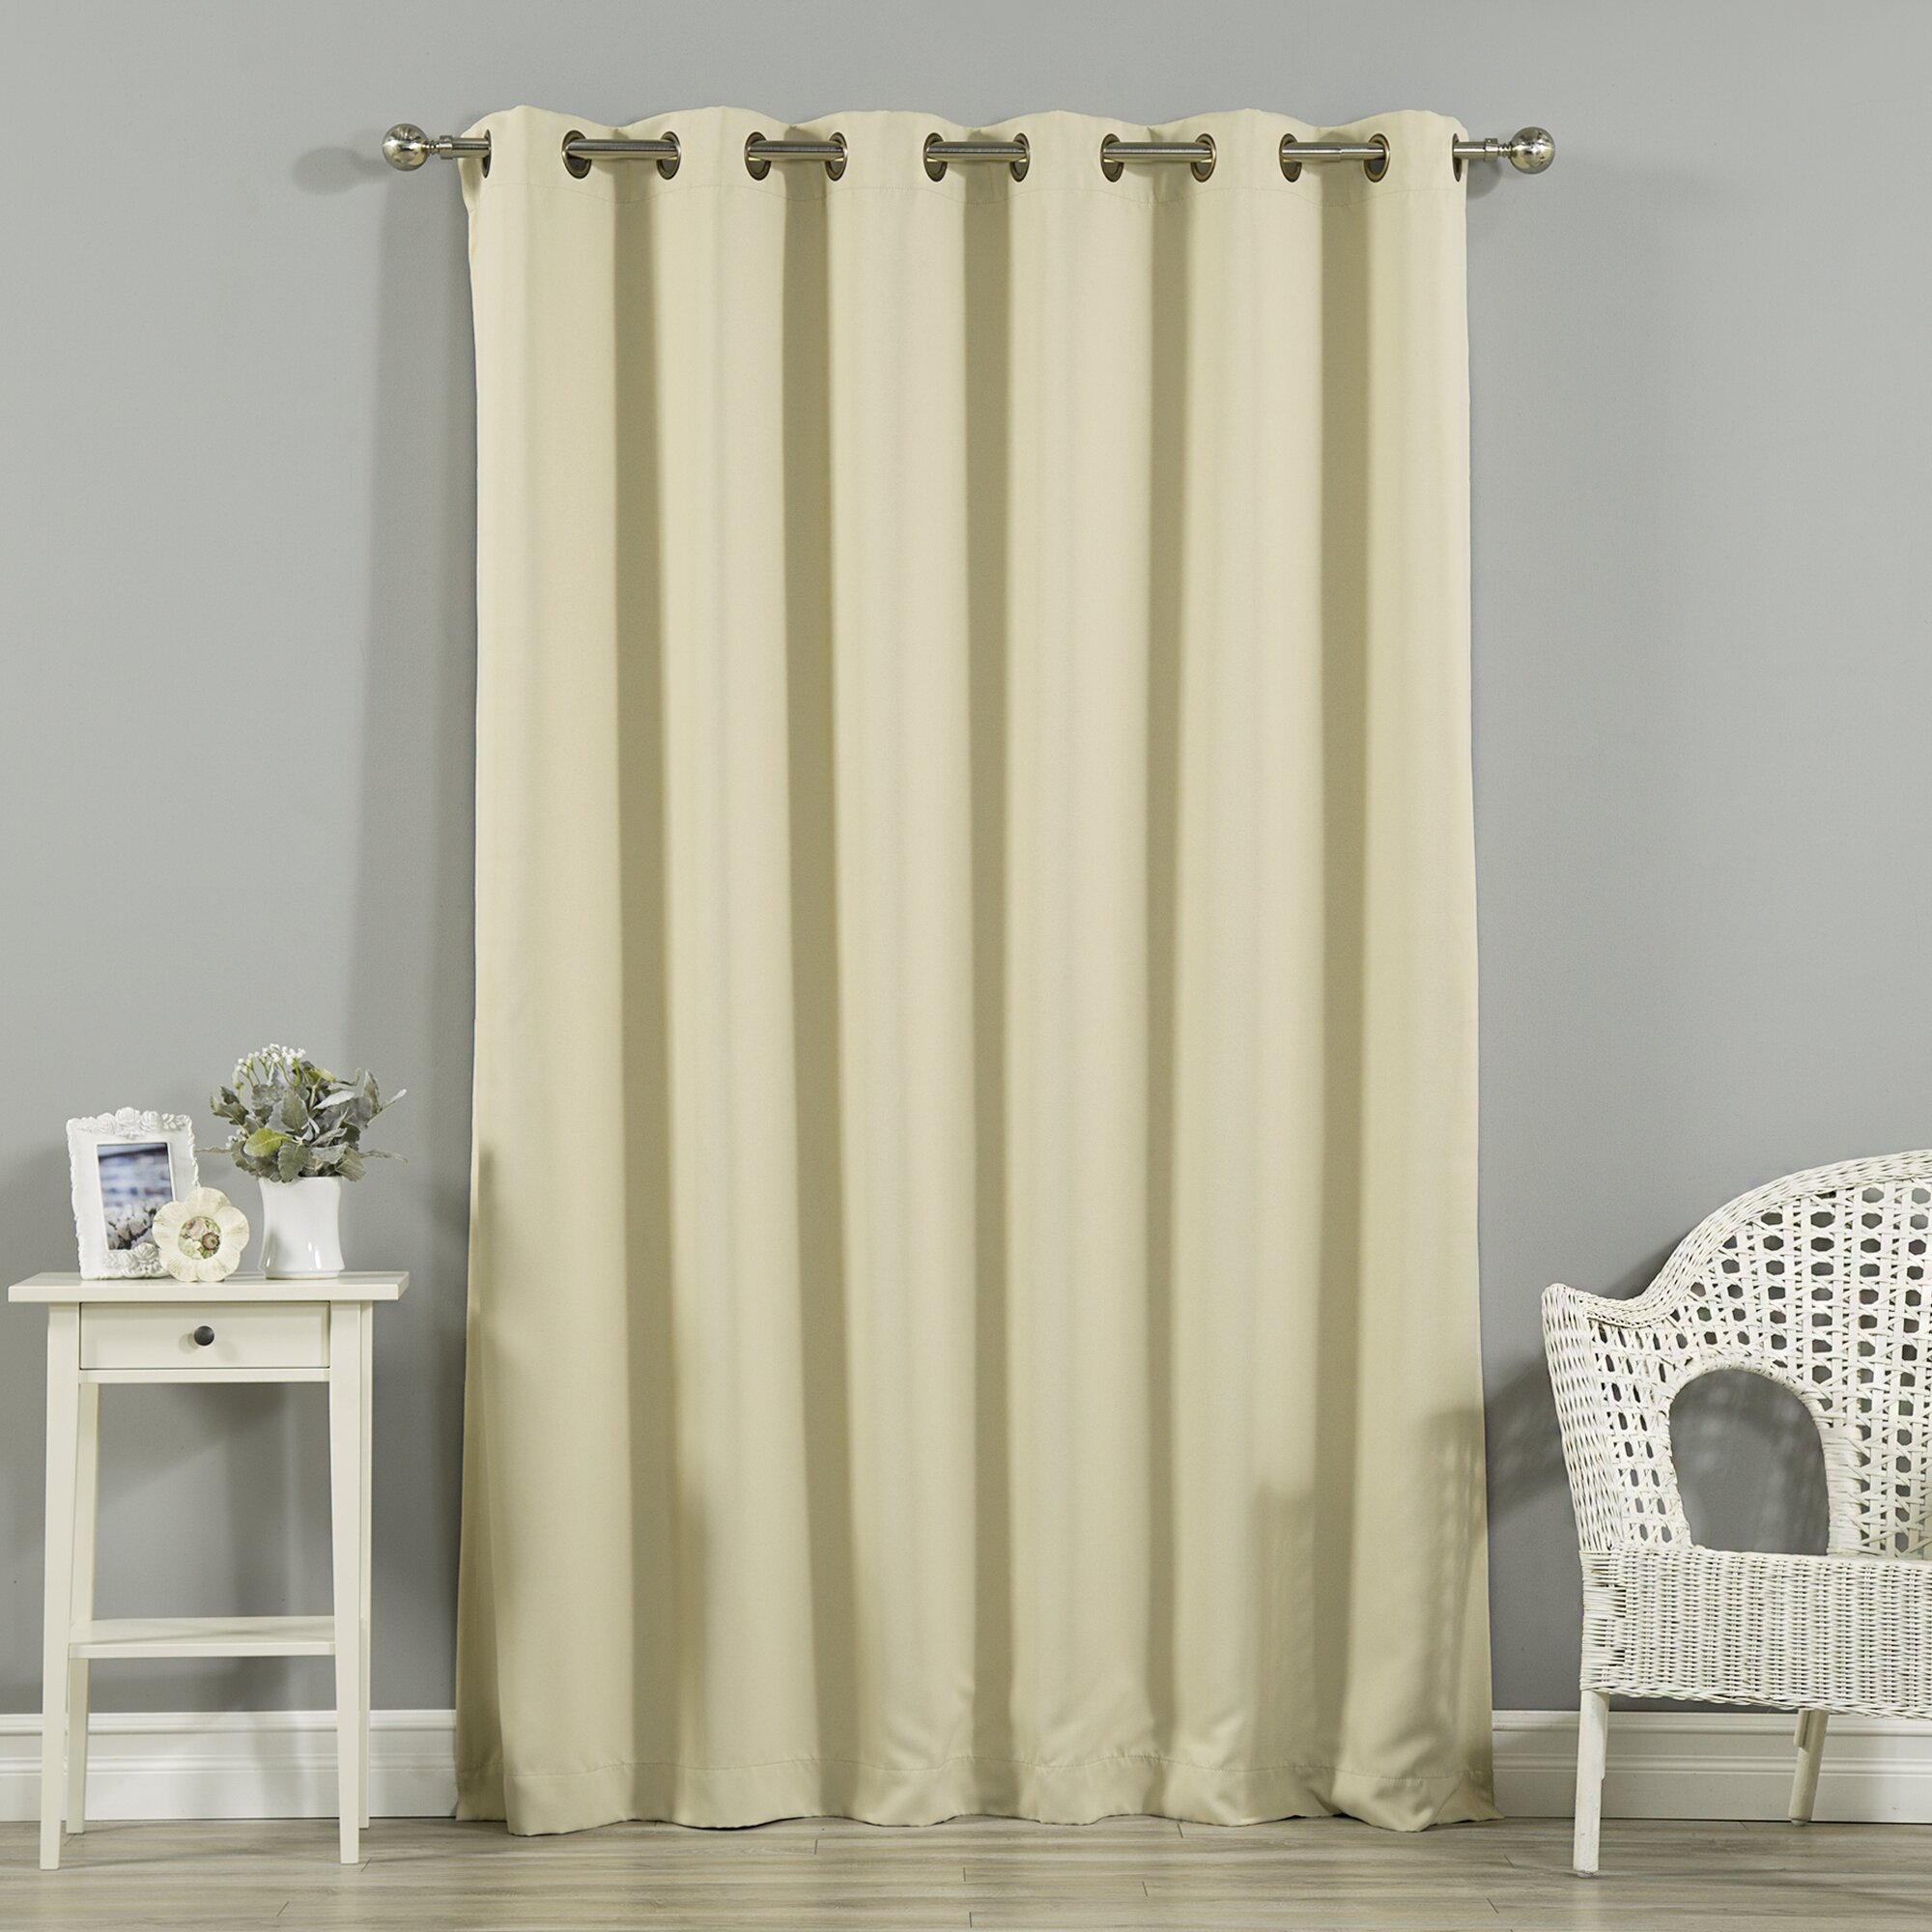 Open window with curtains blowing - Alcott Hill Reg Scarsdale Extra Wide Width Blackout Thermal Single Curtain Panel